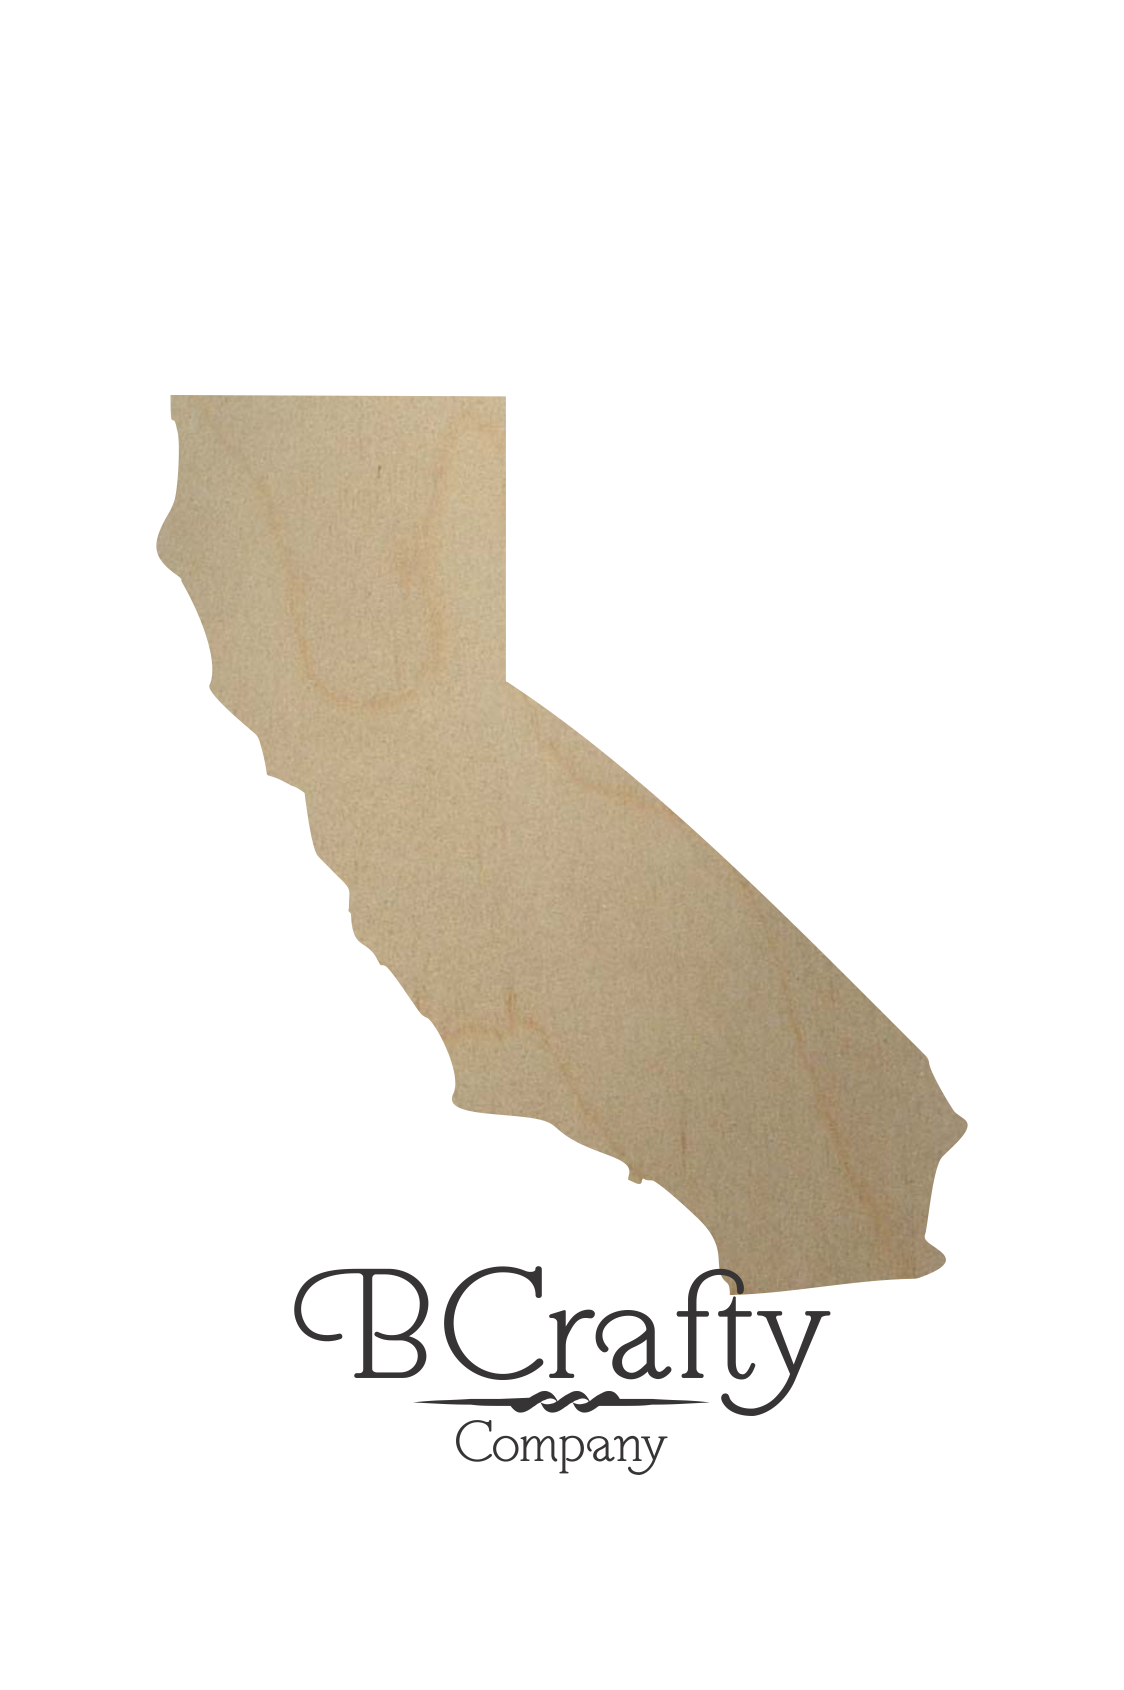 Calif transparent state shape. Wooden california wood cutout